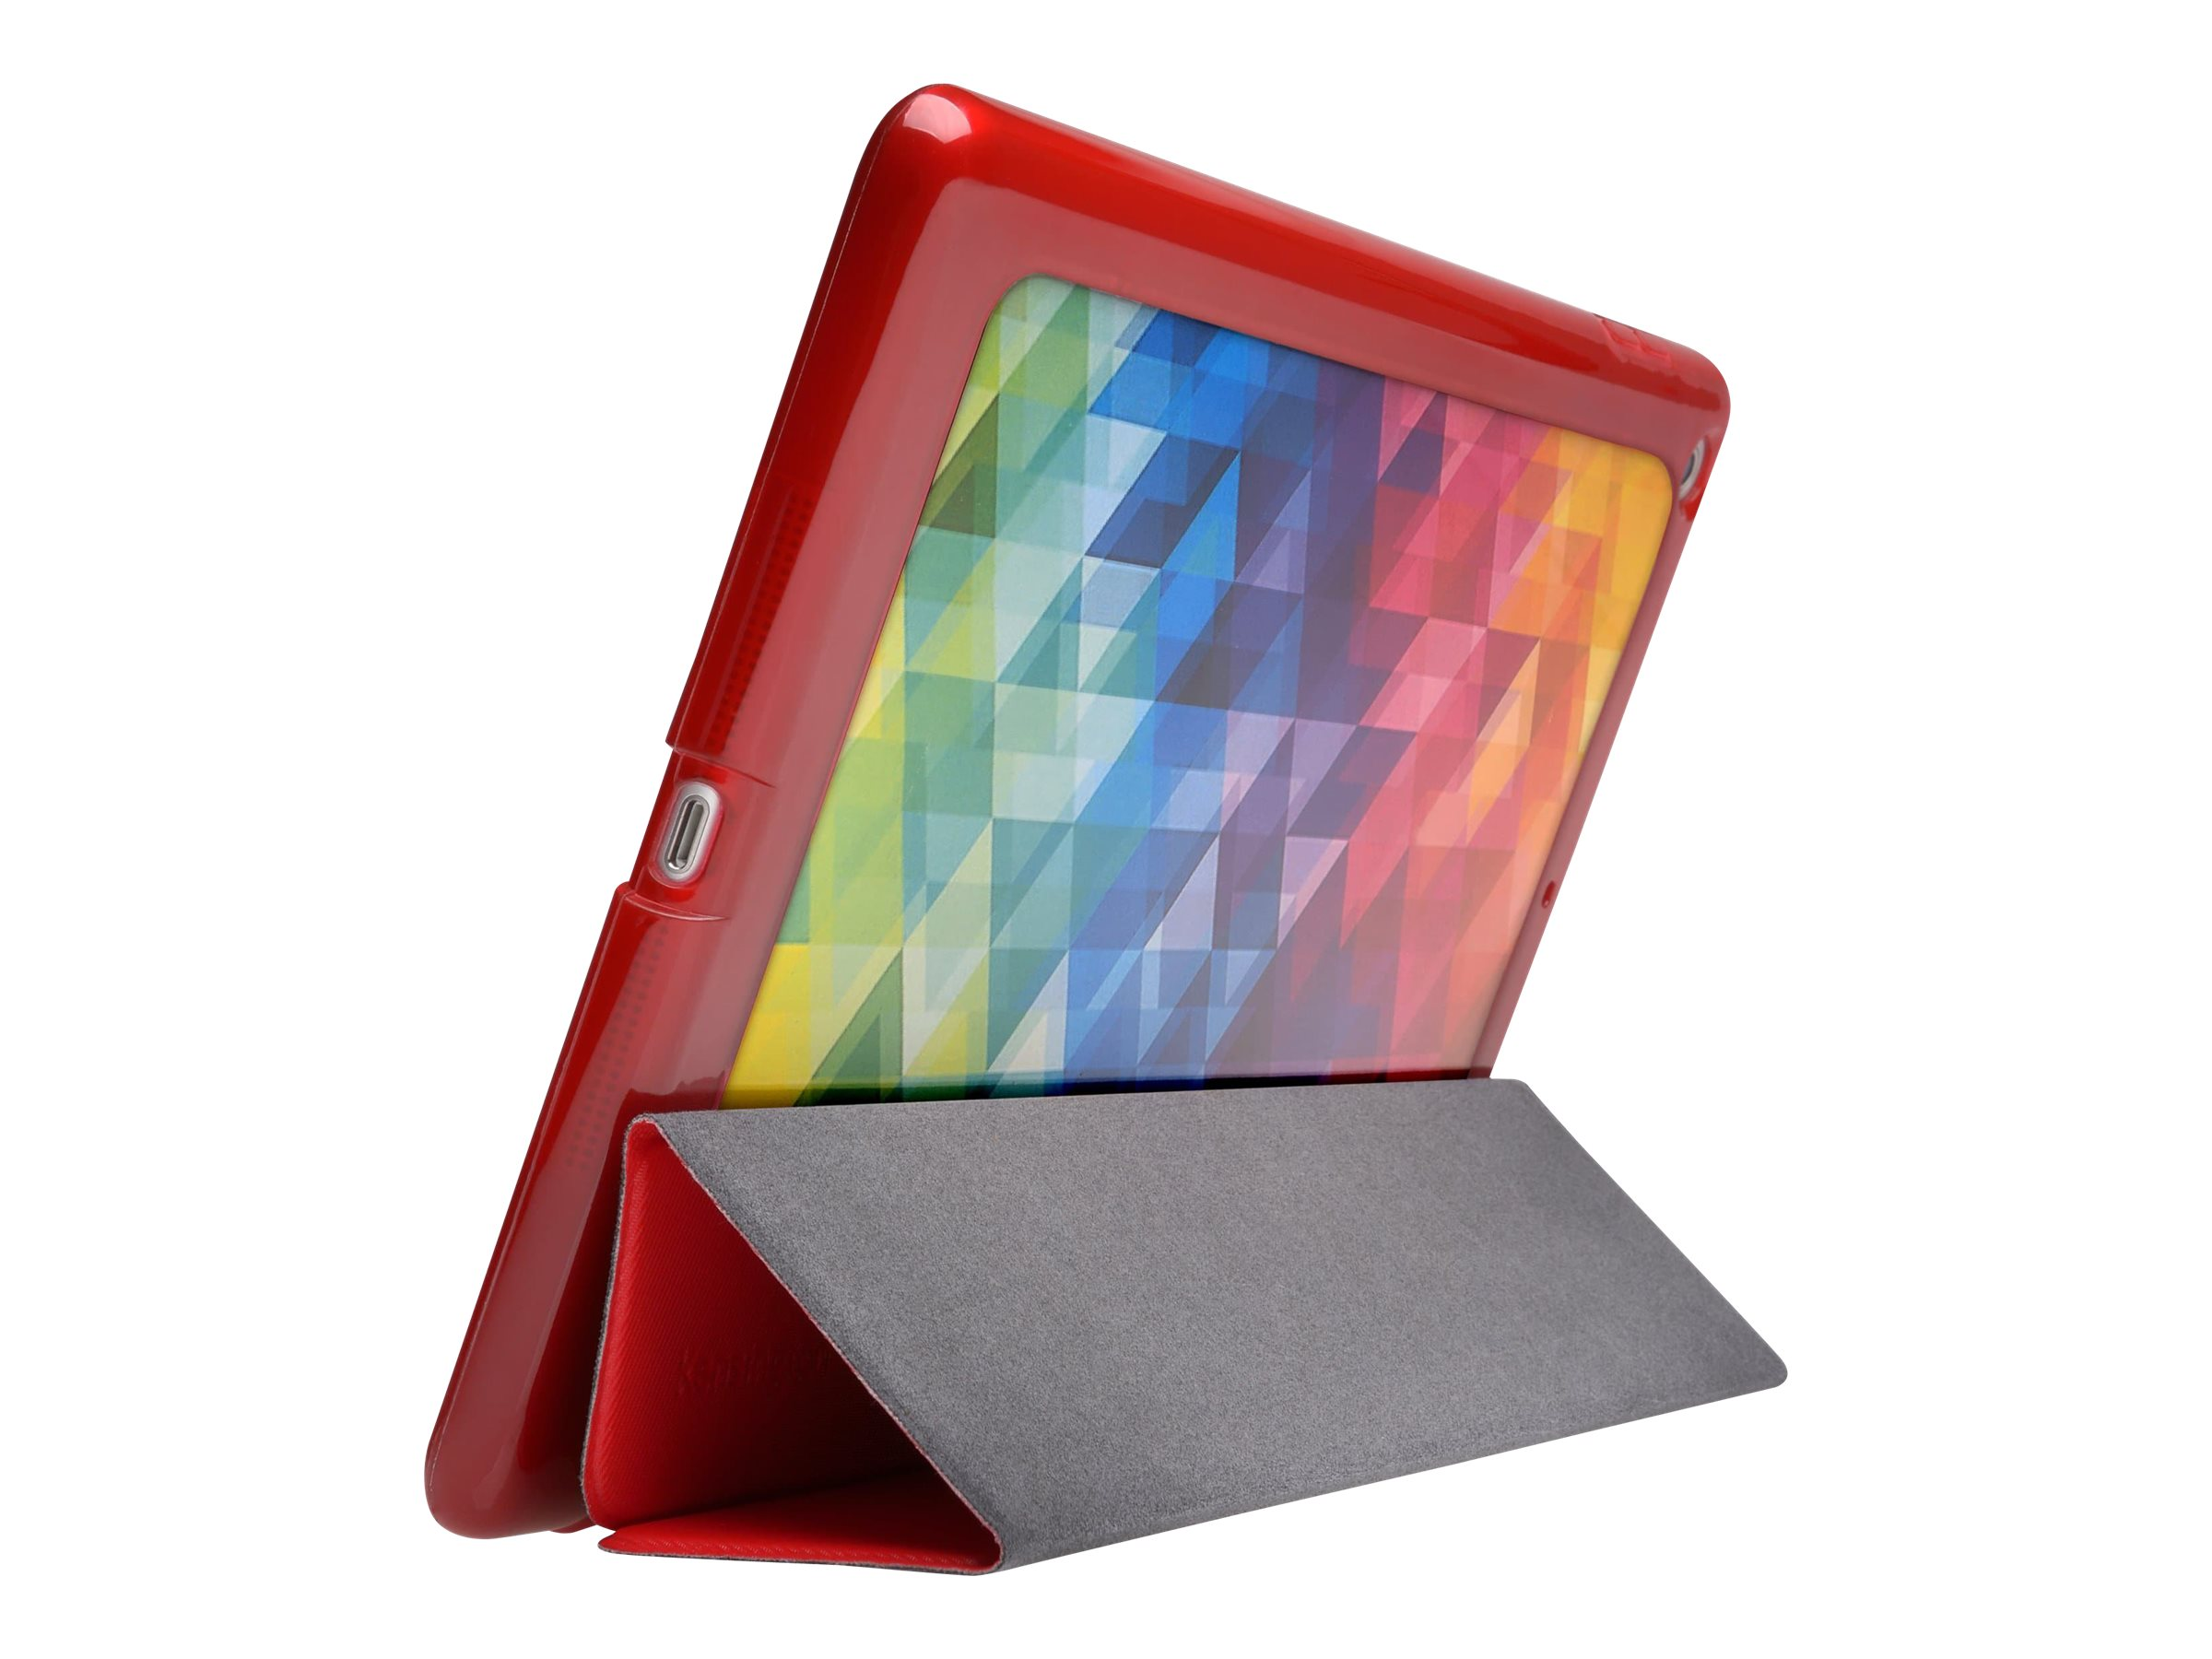 Kensington Customize Me Case for iPad Air 2, Red, K97359US